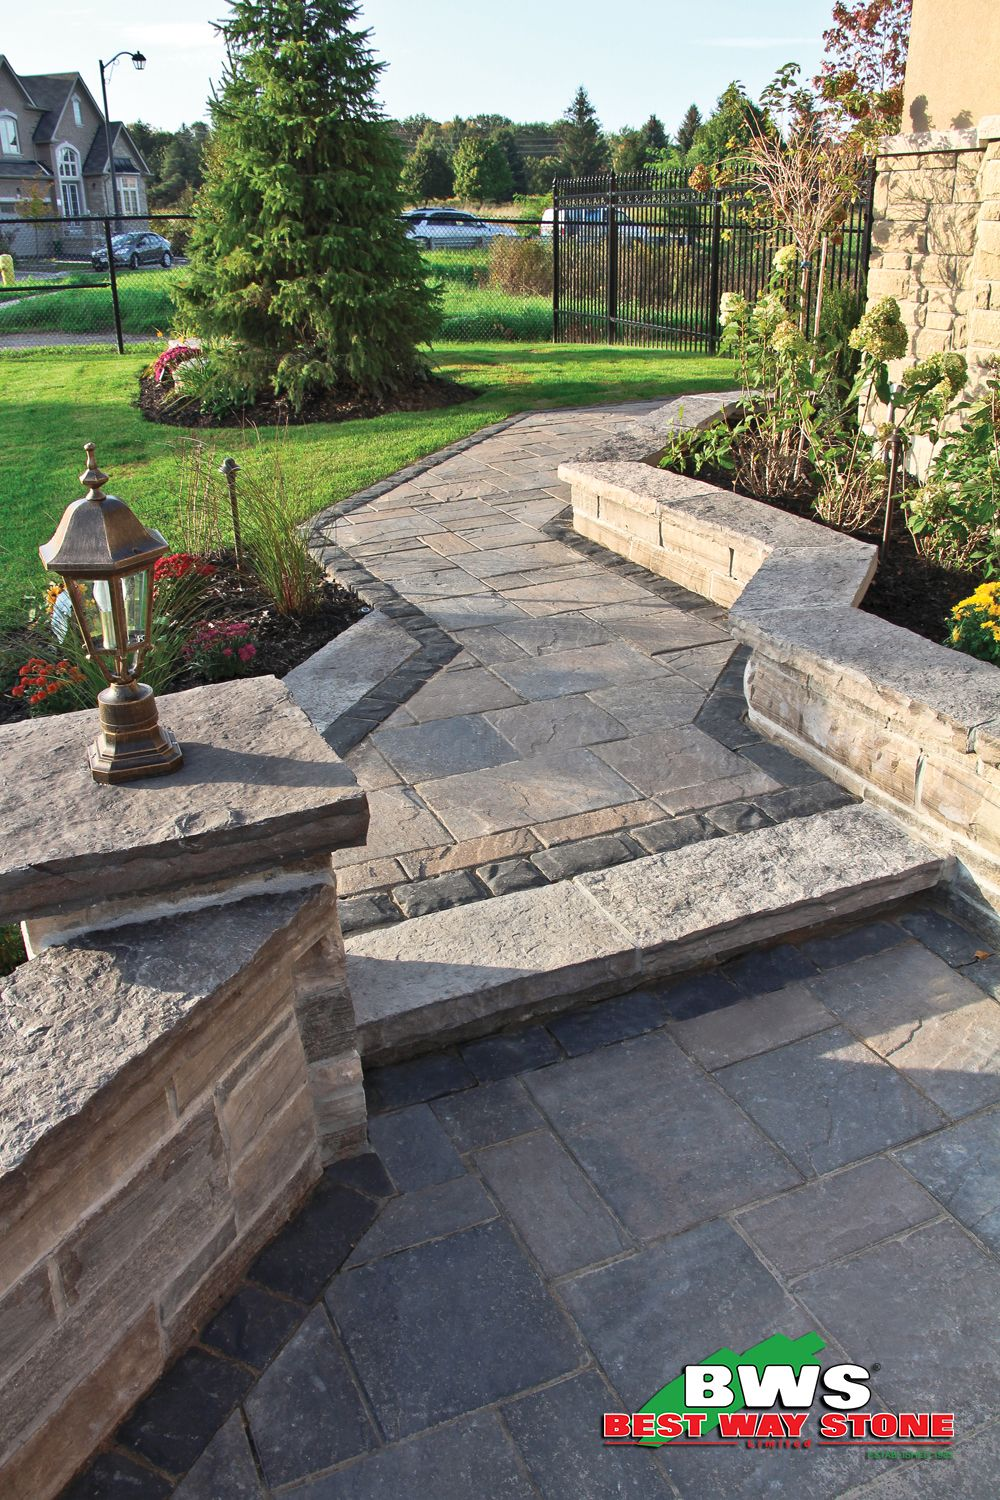 Best Stone For Steps: Best Way Stone > Paver: Trevista (Beige Mix) With Corso